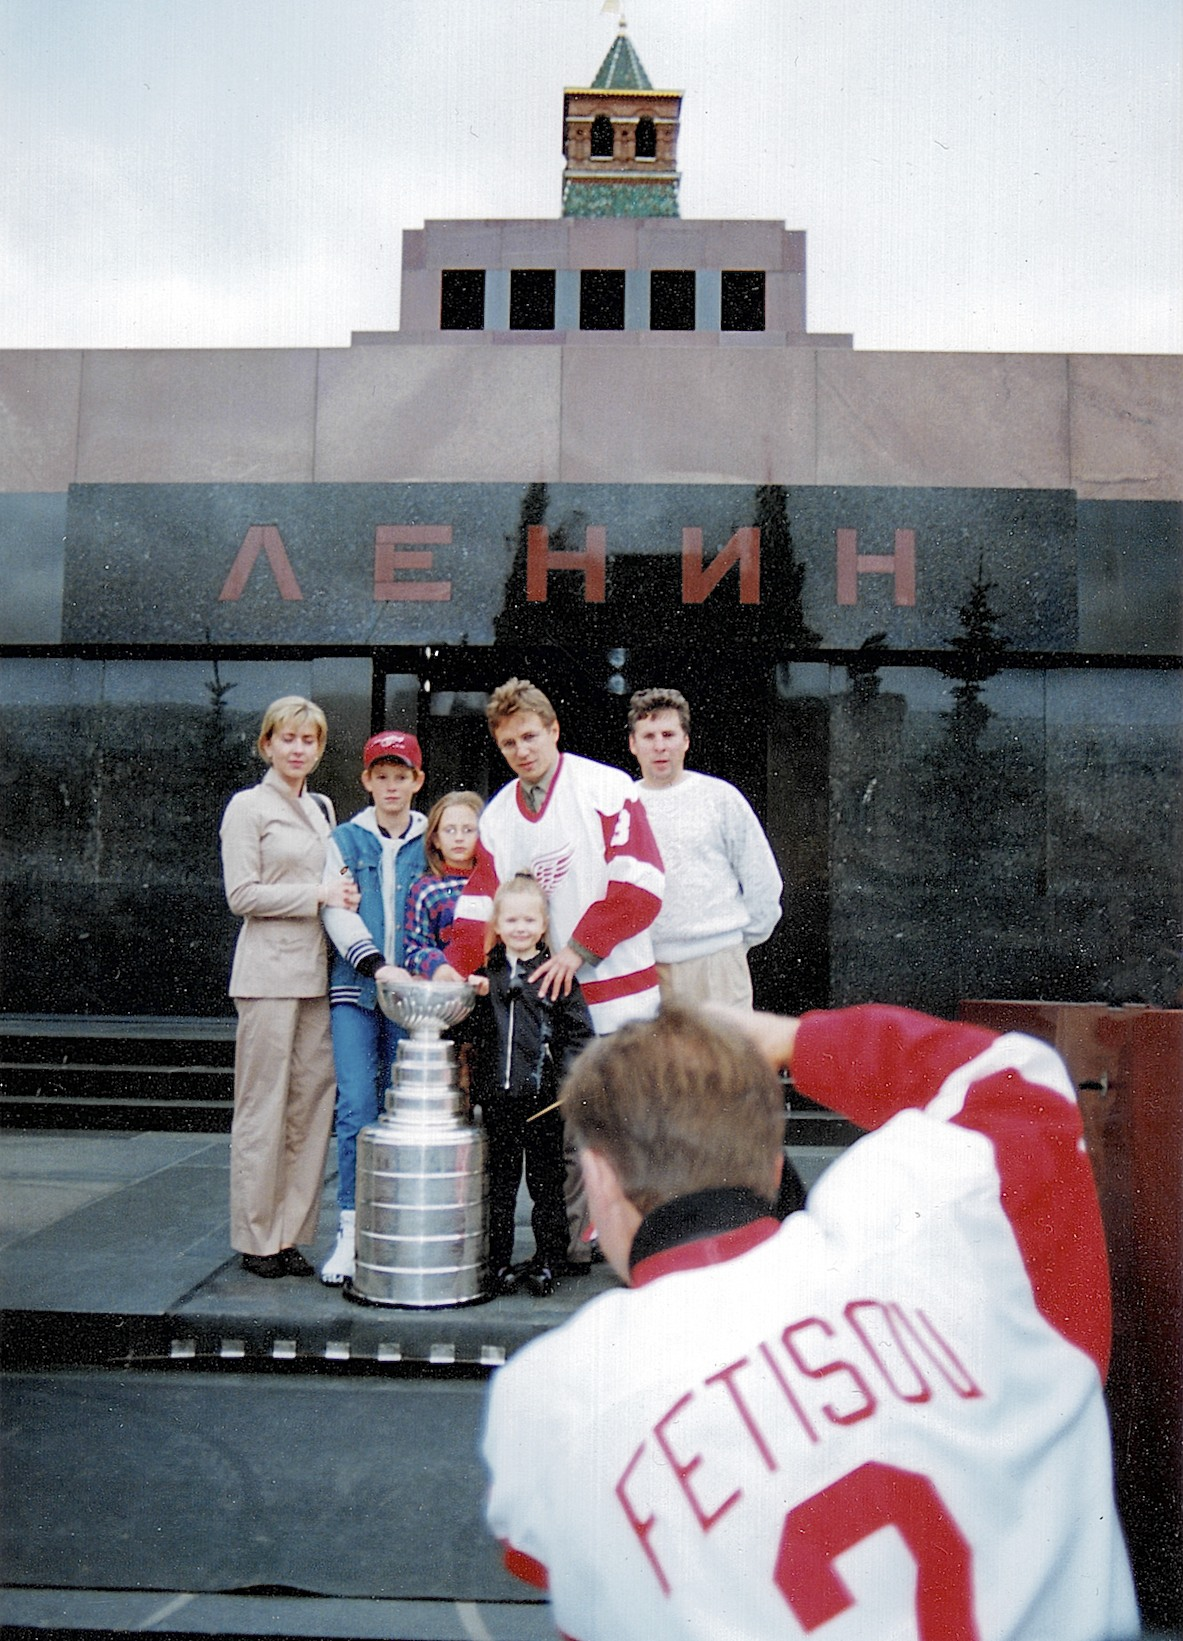 Red Square snapshot: Slava Fetisov focusses on friends (including his CSKA, CCCP and Detroit teammate Igor Larionov) in front of Lenin's tomb in Moscow on August 18, 1997, just before going in for a visit with the erstwhile chairman of the Council of People's Commissars of the Soviet Union.